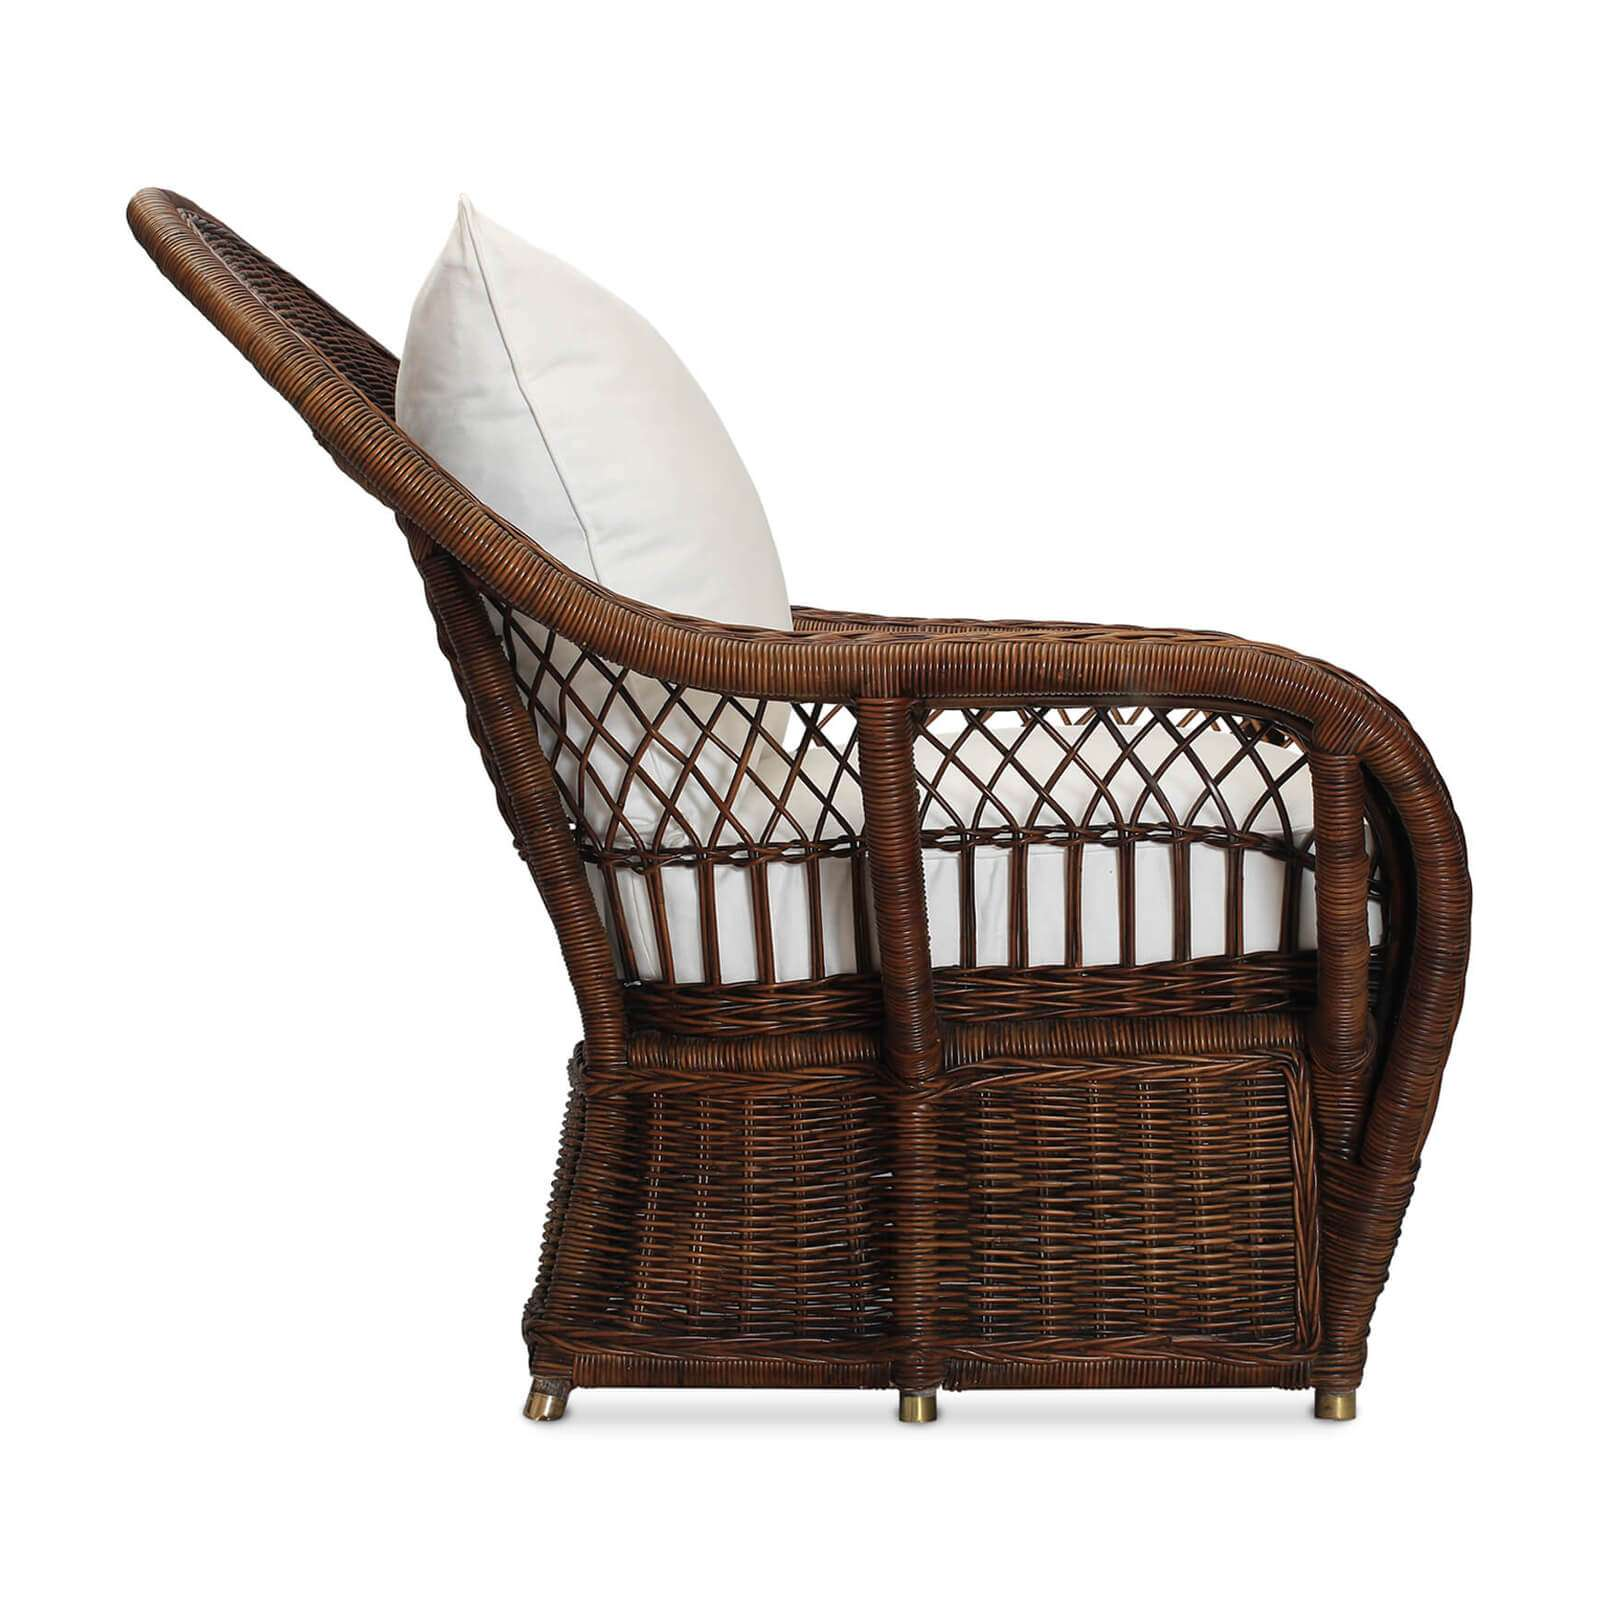 CALYPSO CHAIR 006 - STUART MEMBERY HOME COLLECTION